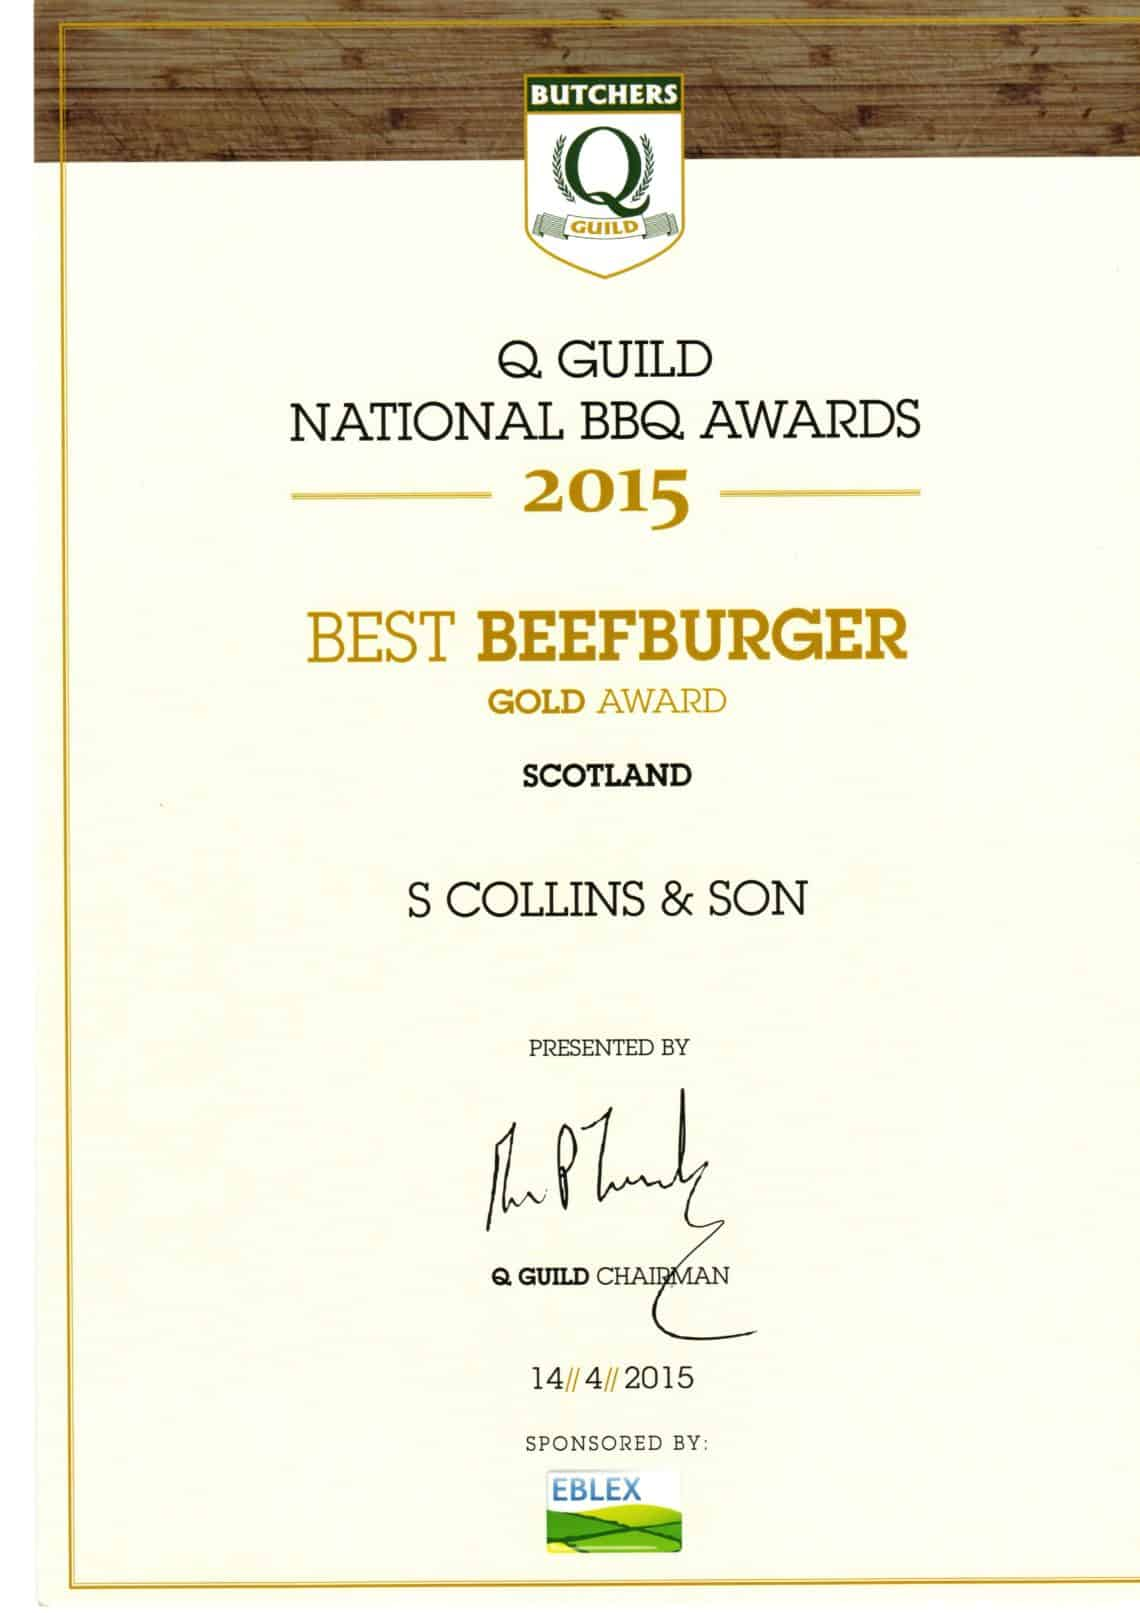 National BBQ Awards 2015: Best Beefburger